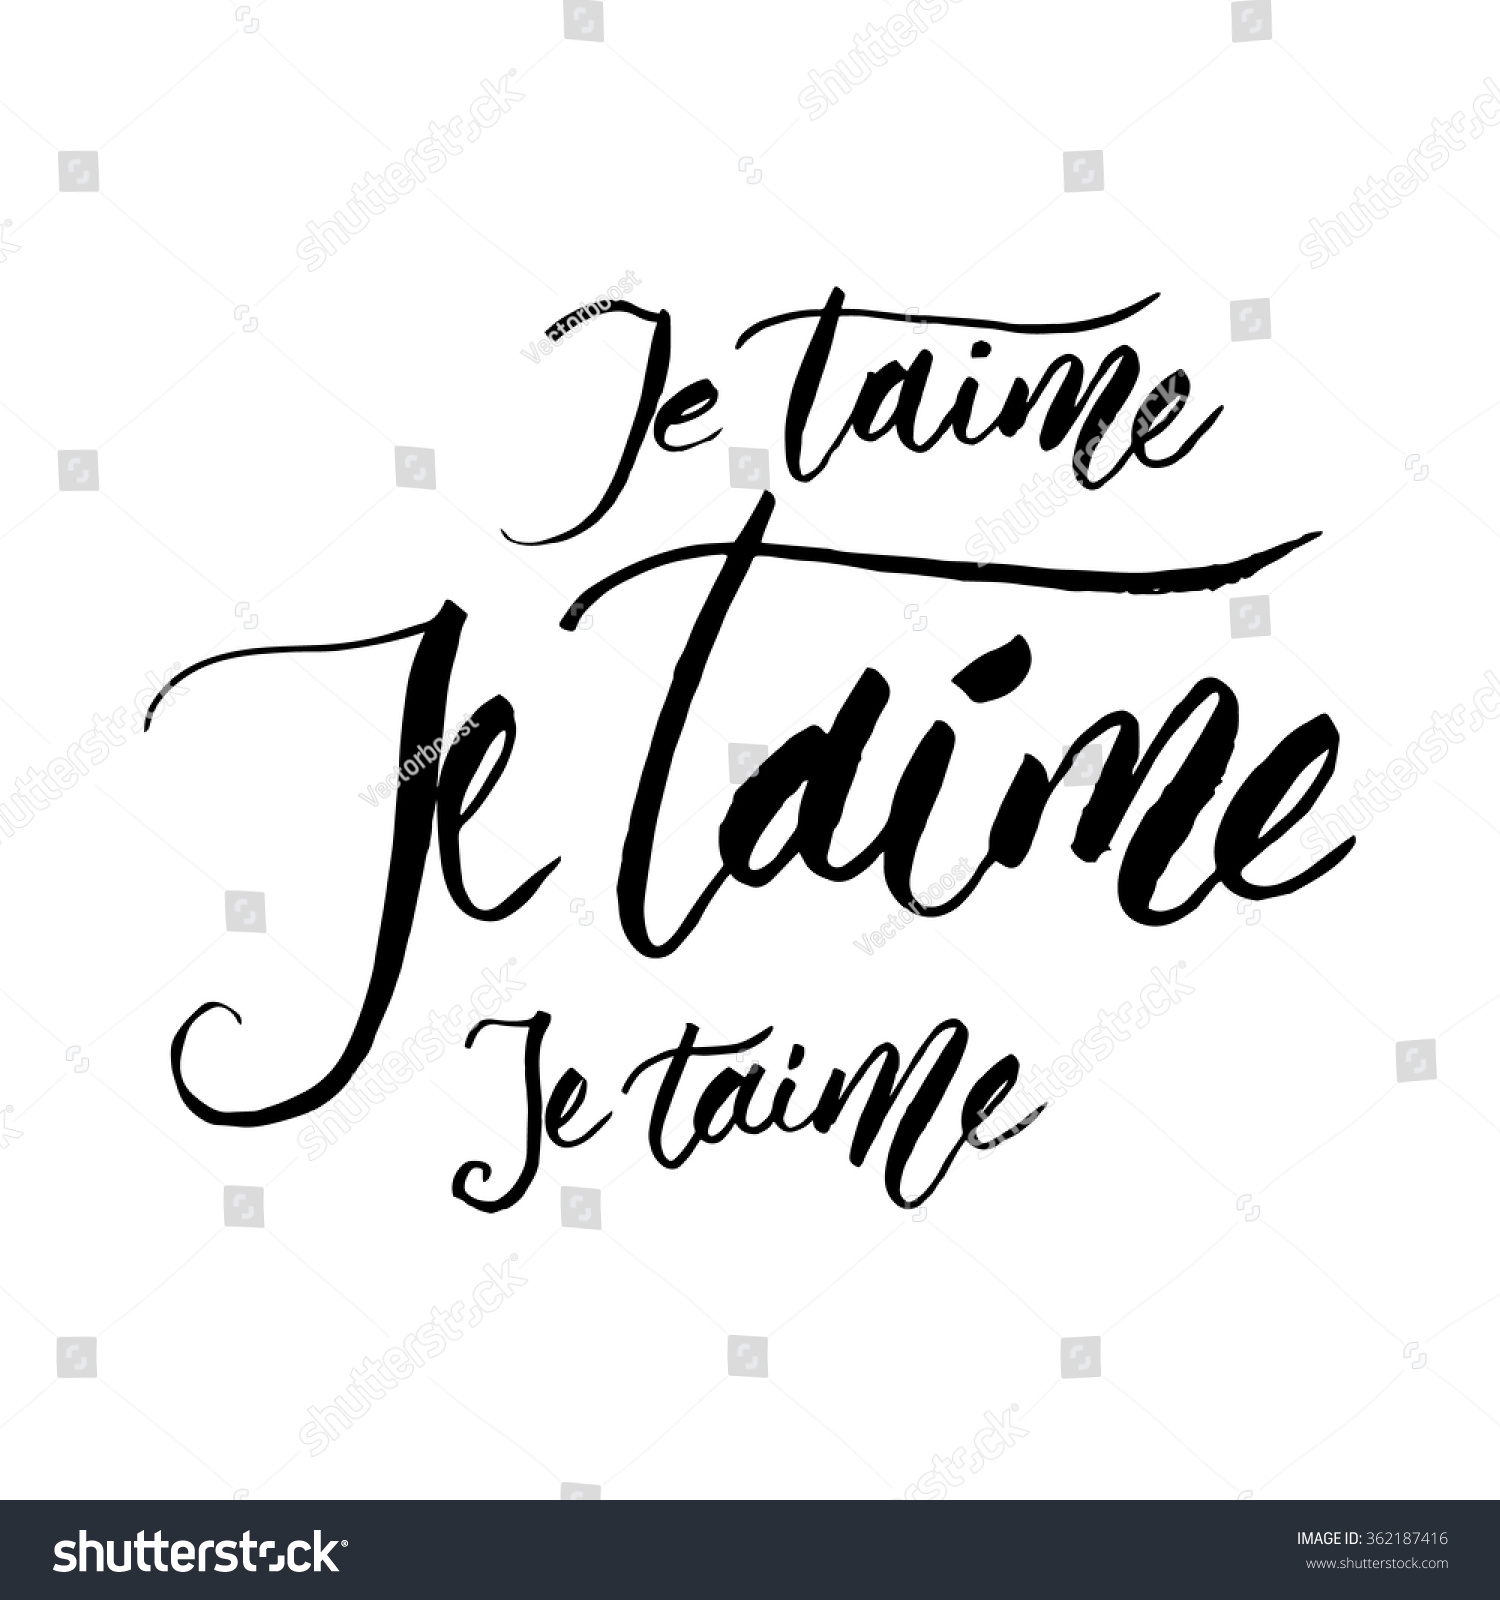 Je taime love you french handlettered stock vector